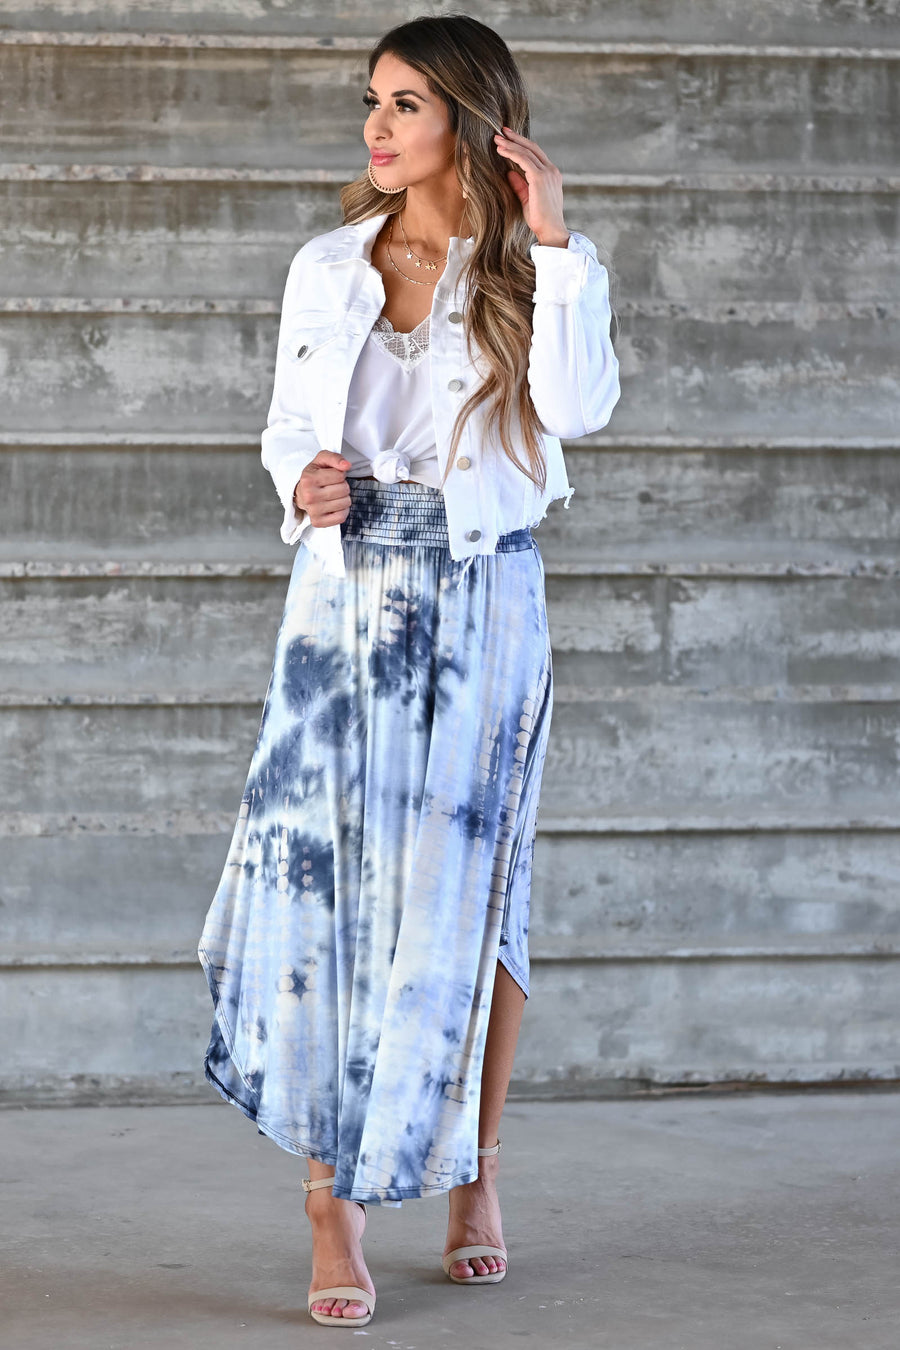 Desert Days Tie Dye Maxi Skirt - Navy women's high-rise maxi skirt featuring smocked waistband and rounded split hem design closet candy front